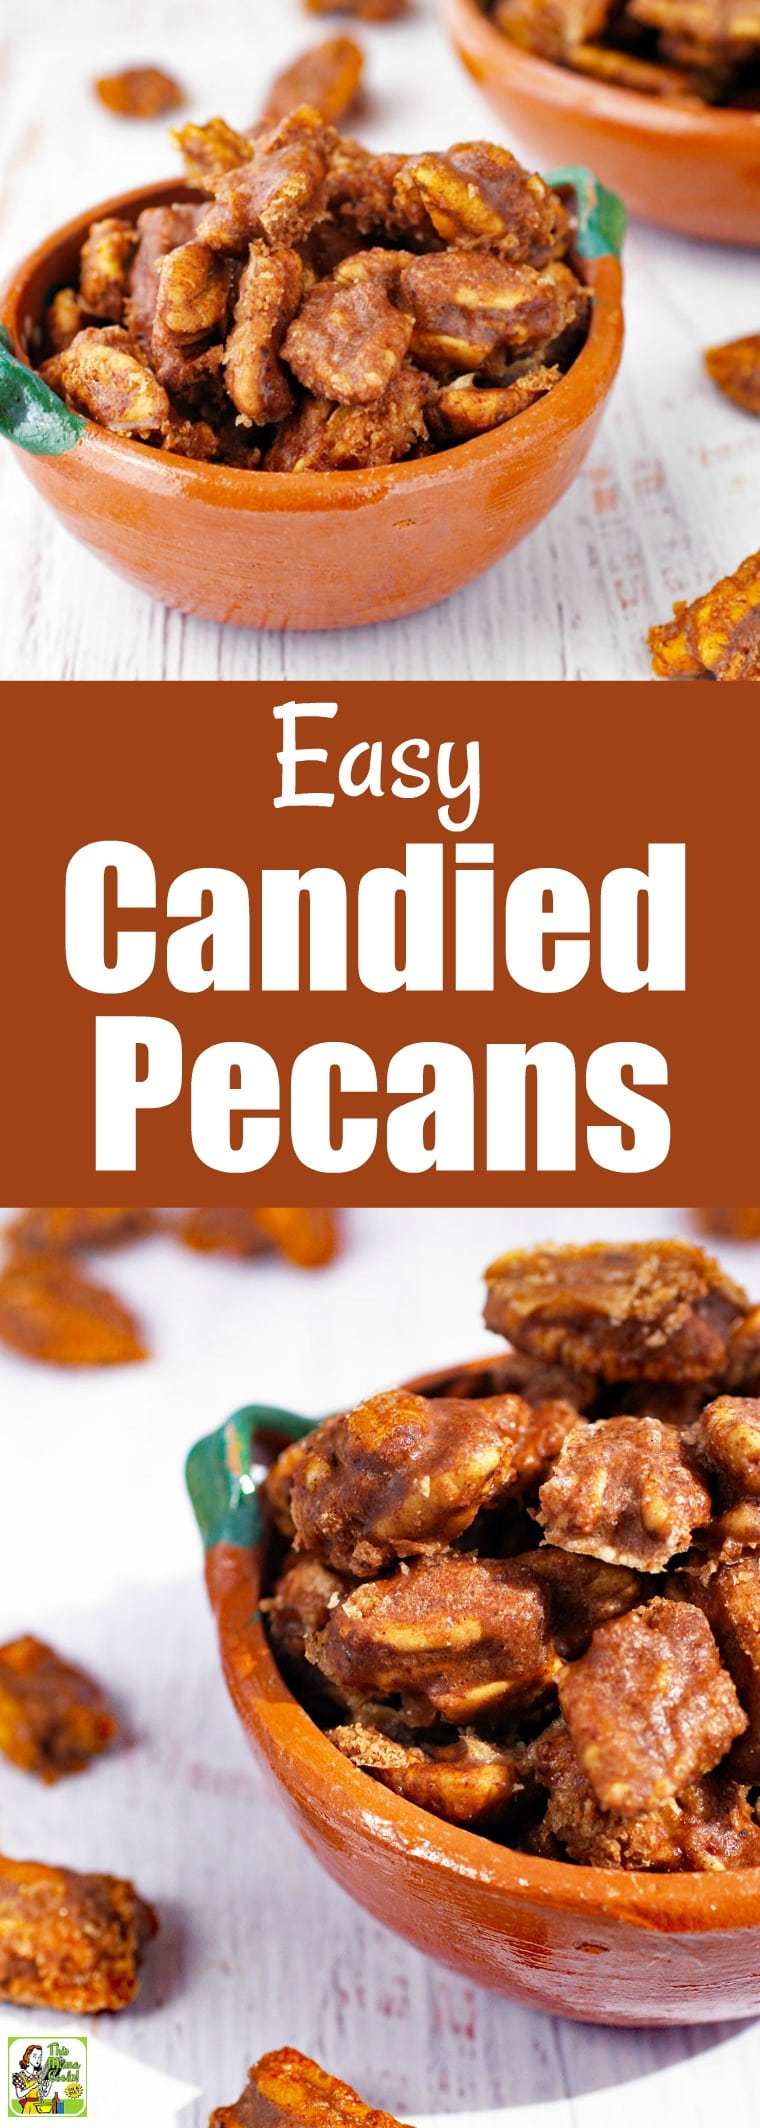 Make this Candied Pecans Recipe to use in salads or as a party appetizer. Add these easy candied pecans to your favorite trail mix or in baked goods. Add different spices to make these into spicy candied pecans. #recipes #easy #recipeoftheday #healthyrecipes #glutenfree #easyrecipe #easyrecipes #glutenfreerecipes #sugarfree #homemade #snacks #appetizers #gifts #giftideas